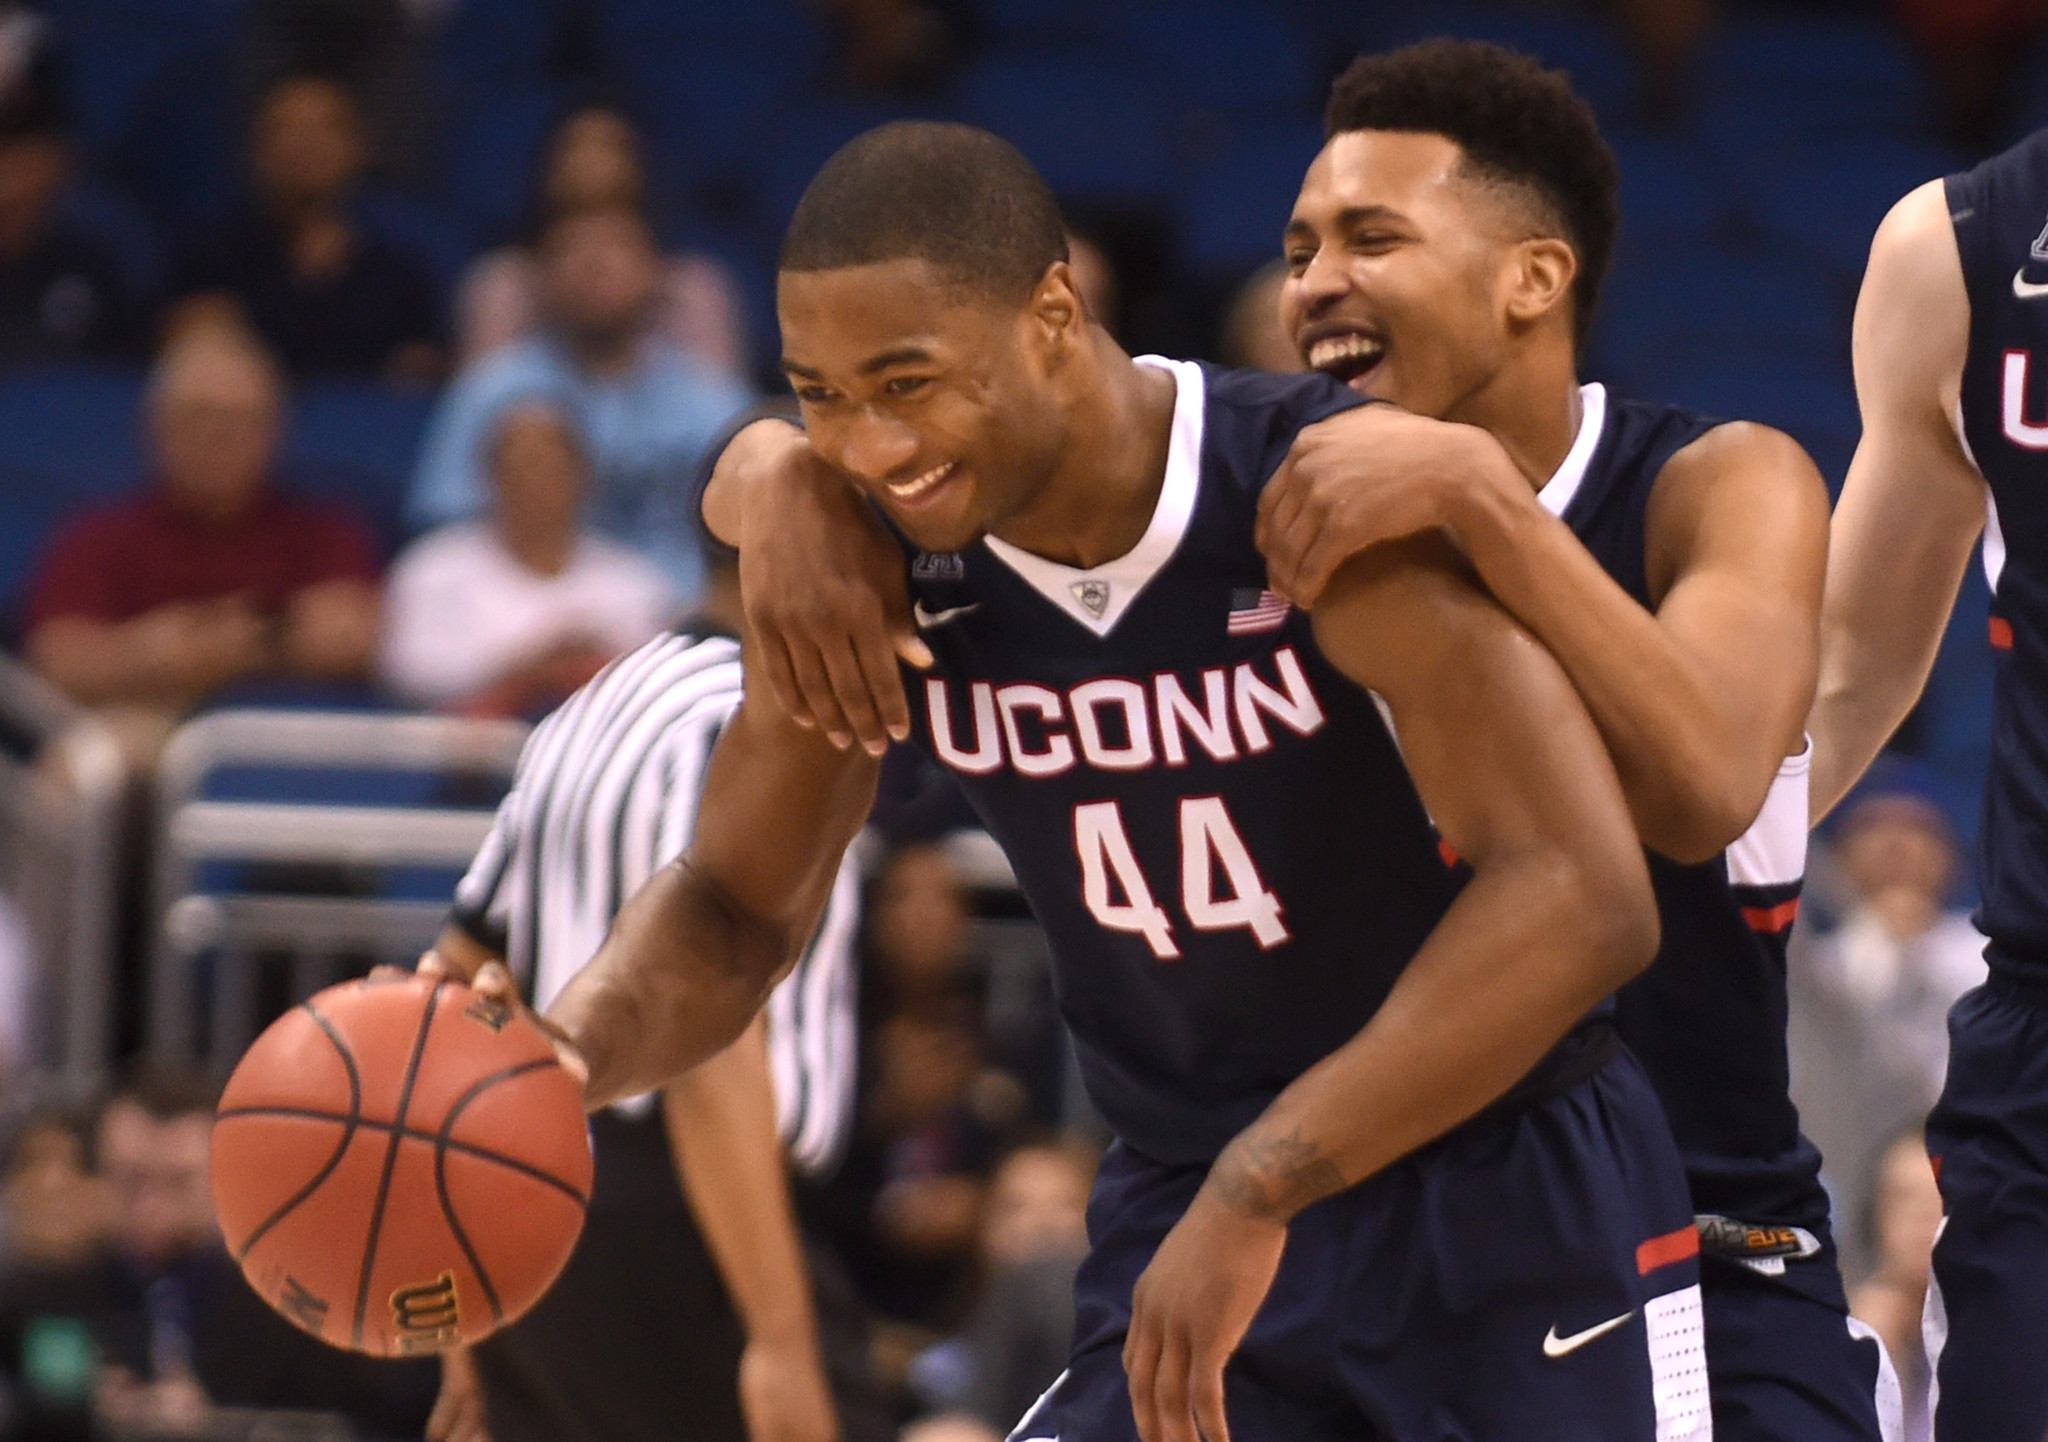 uconn men's basketball schedule released; aac opener at xl vs